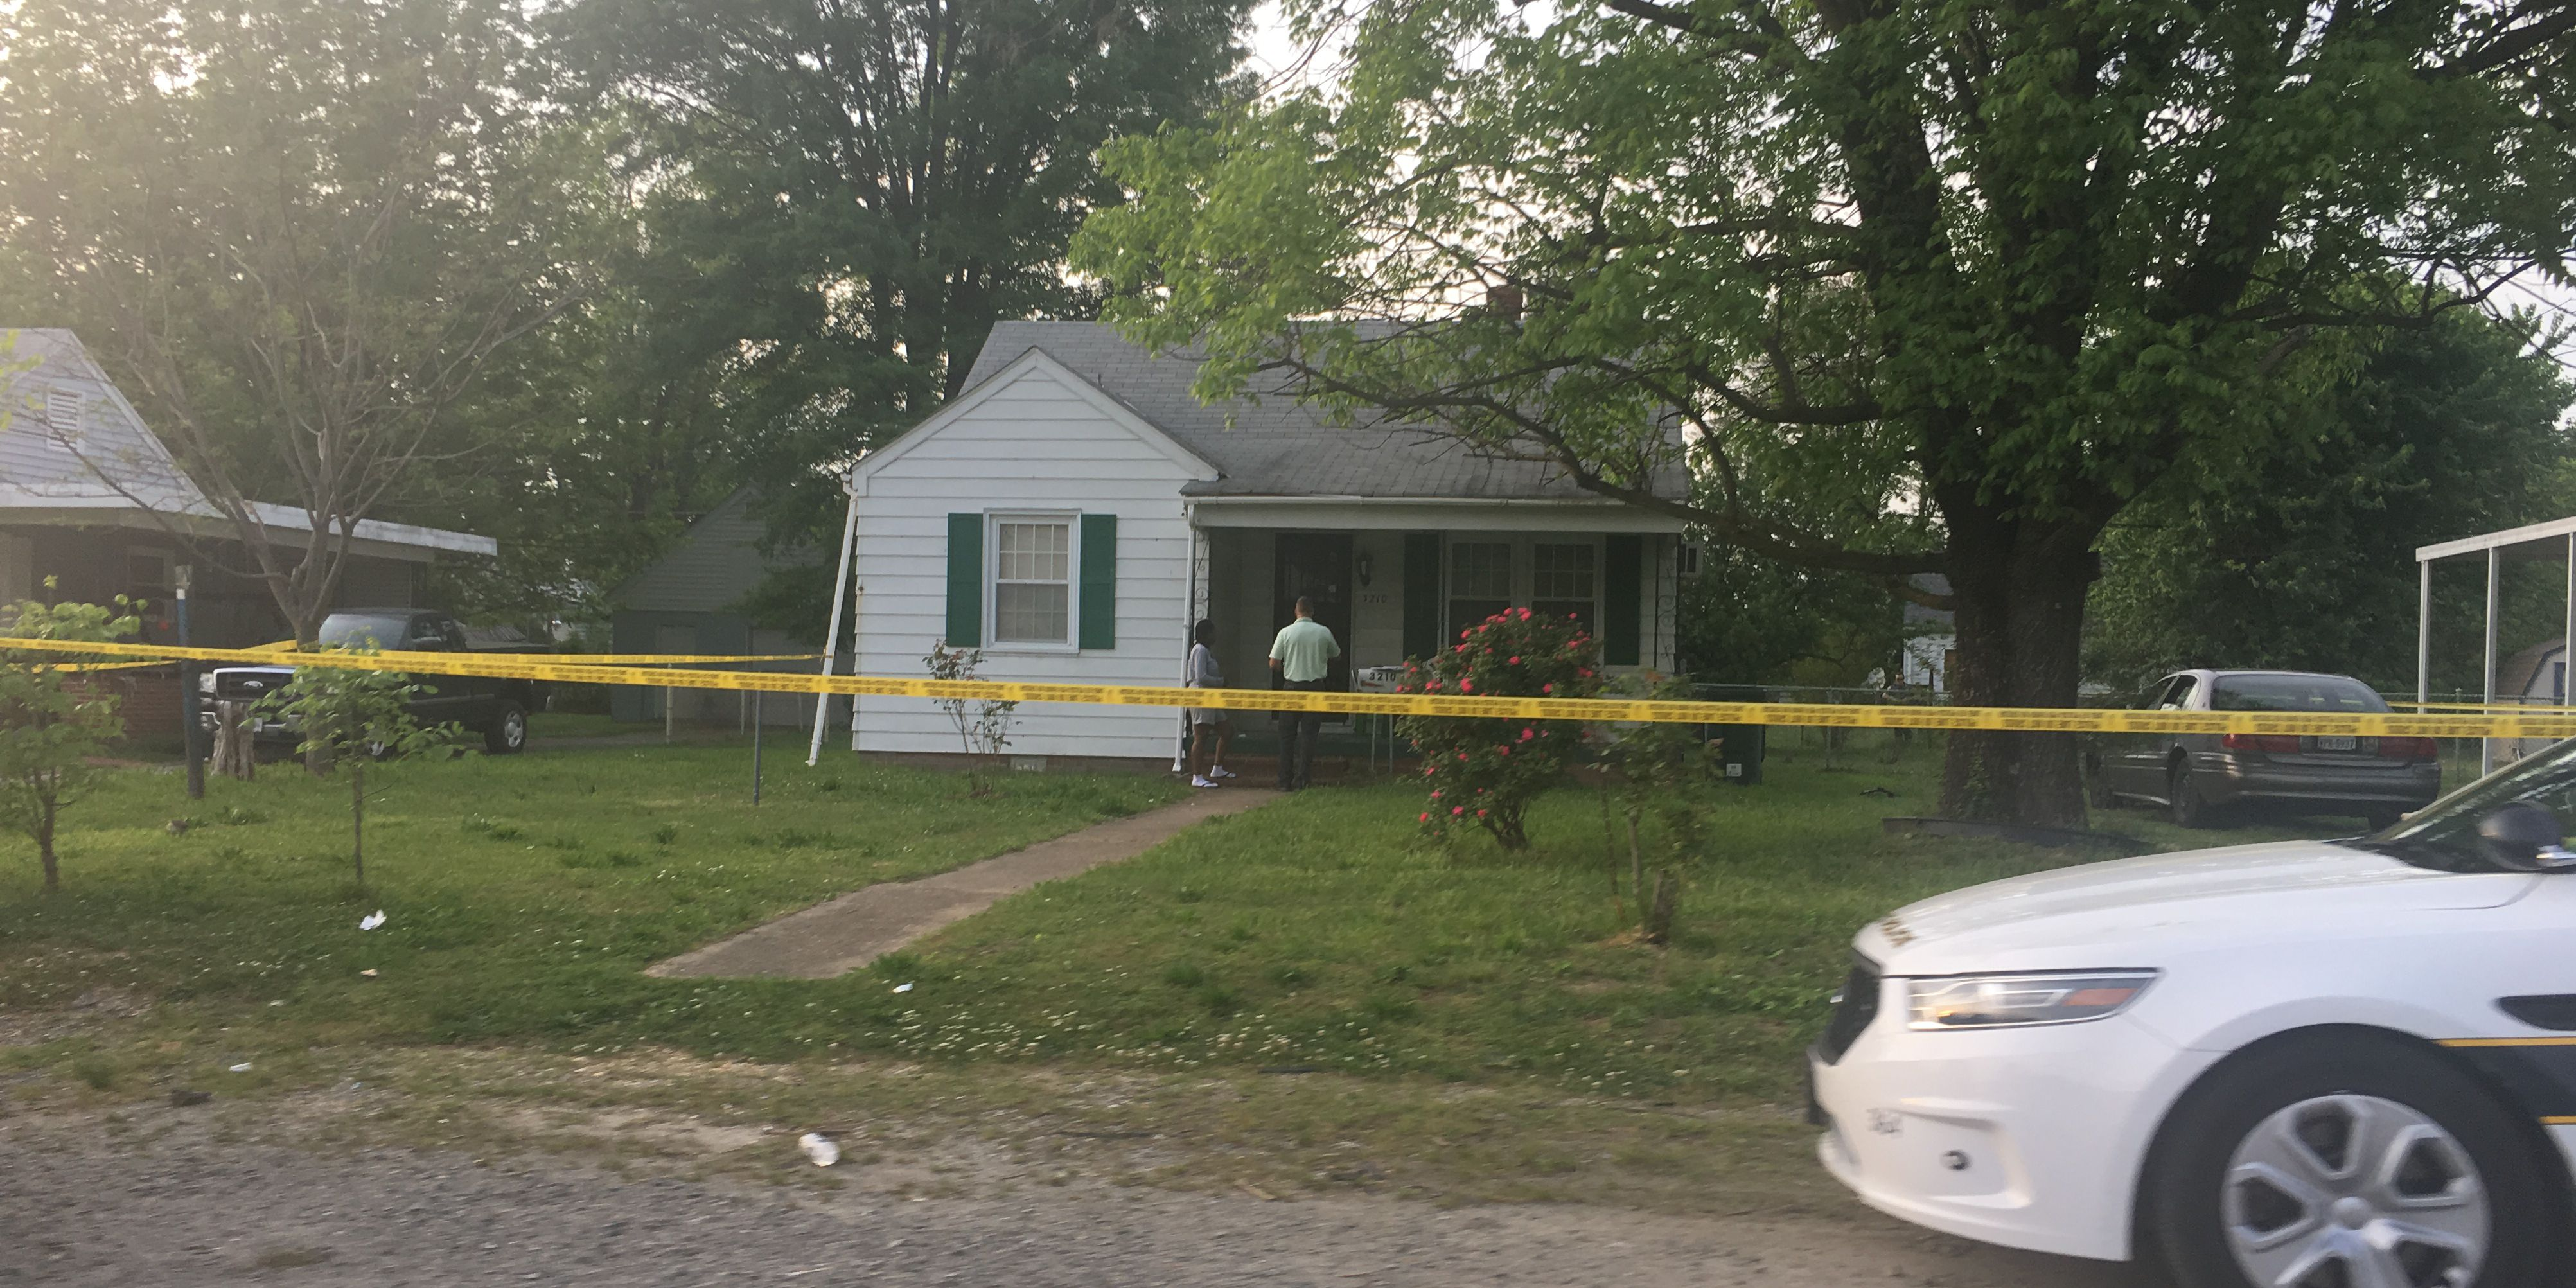 Man wounded in Henrico shooting